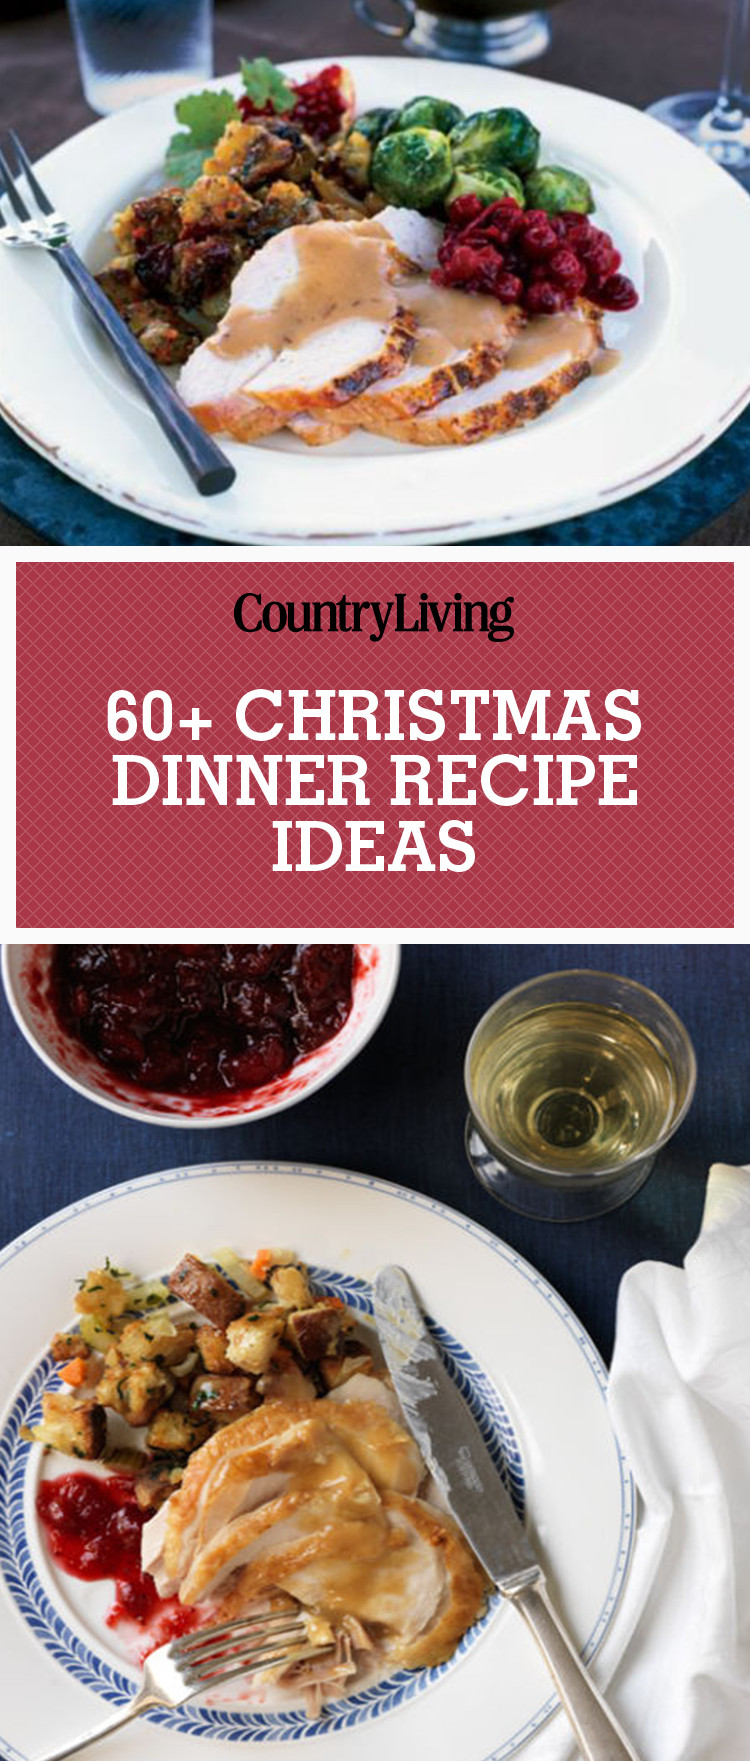 Food For Christmas Dinner  70 Easy Christmas Dinner Ideas Best Holiday Meal Recipes